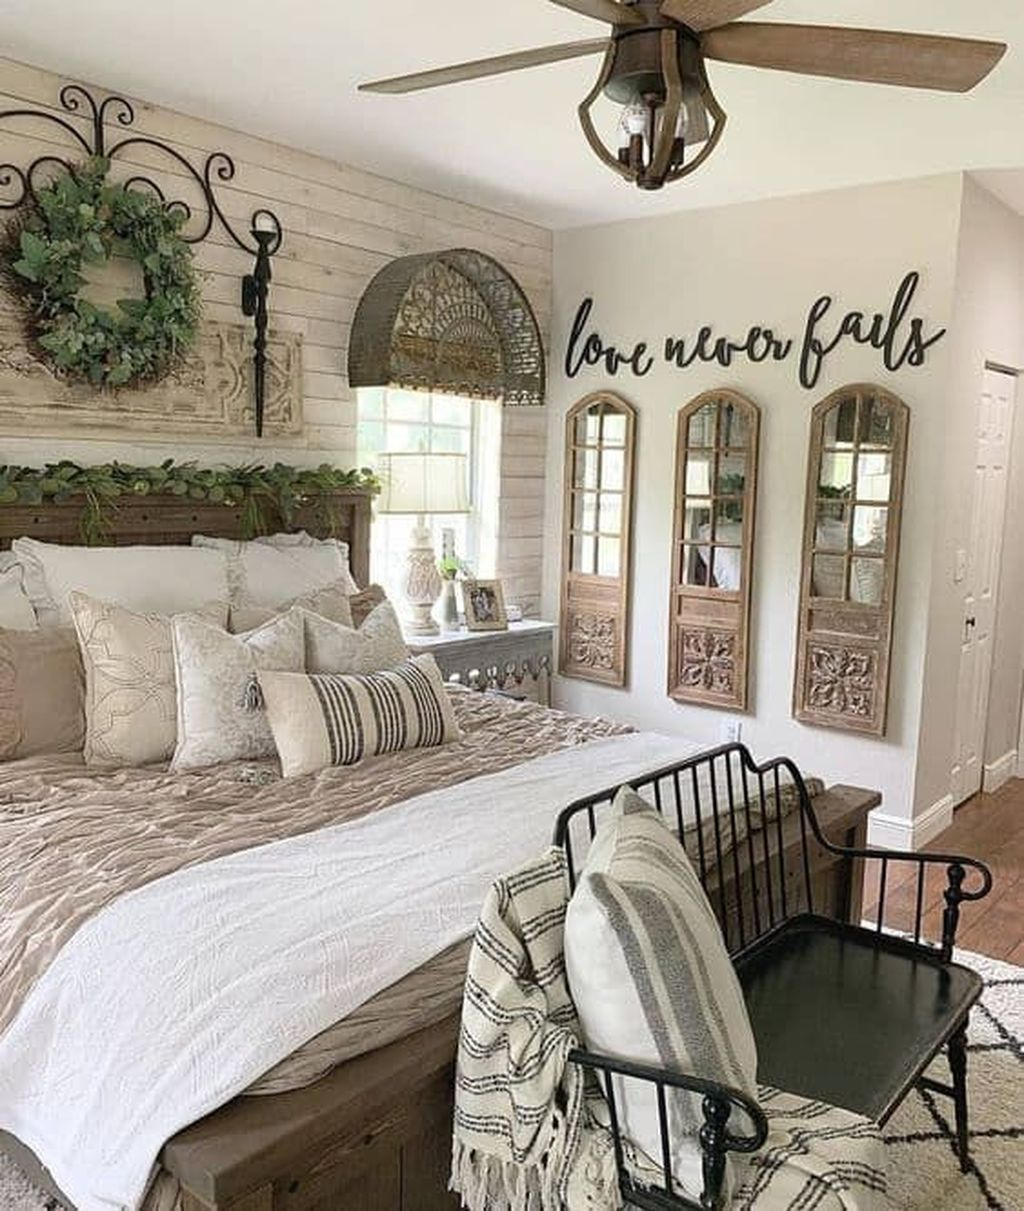 The Best Ideas To Decorate Interior Design With Farmhouse Style 34